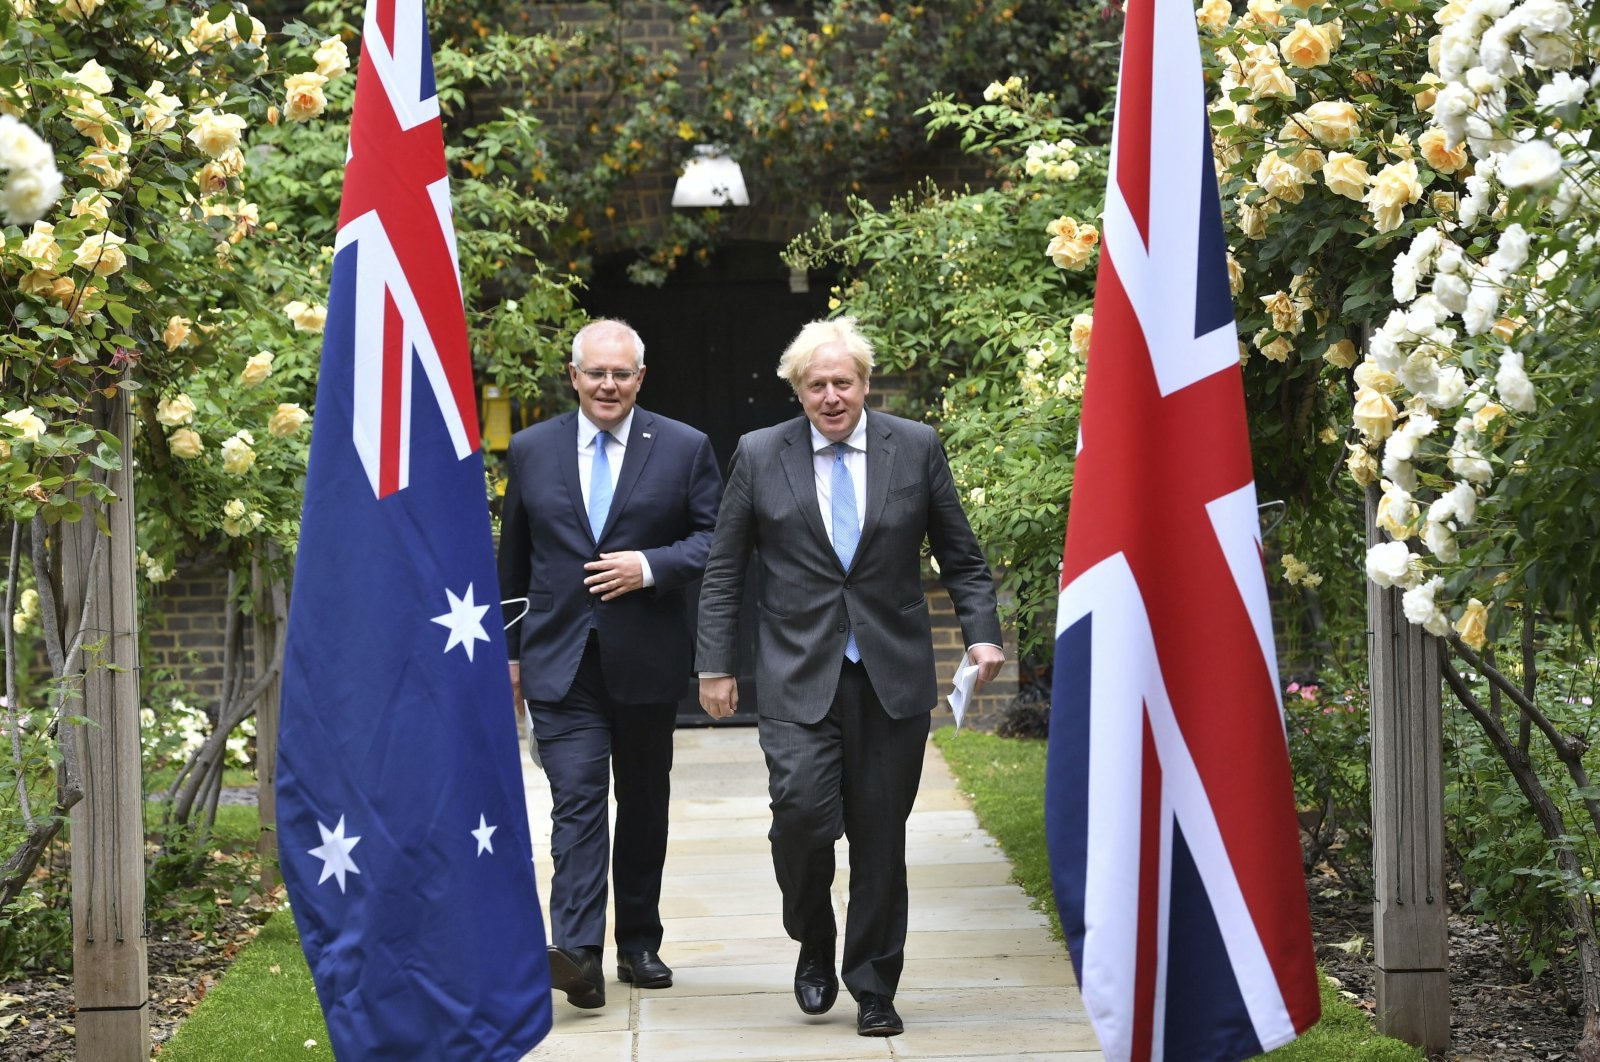 Britain's Prime Minister Boris Johnson (R) walks with Australian Prime Minister Scott Morrison after their meeting, in the garden of 10 Downing Street, London, the U.K., June 15, 2021. (AP Photo)